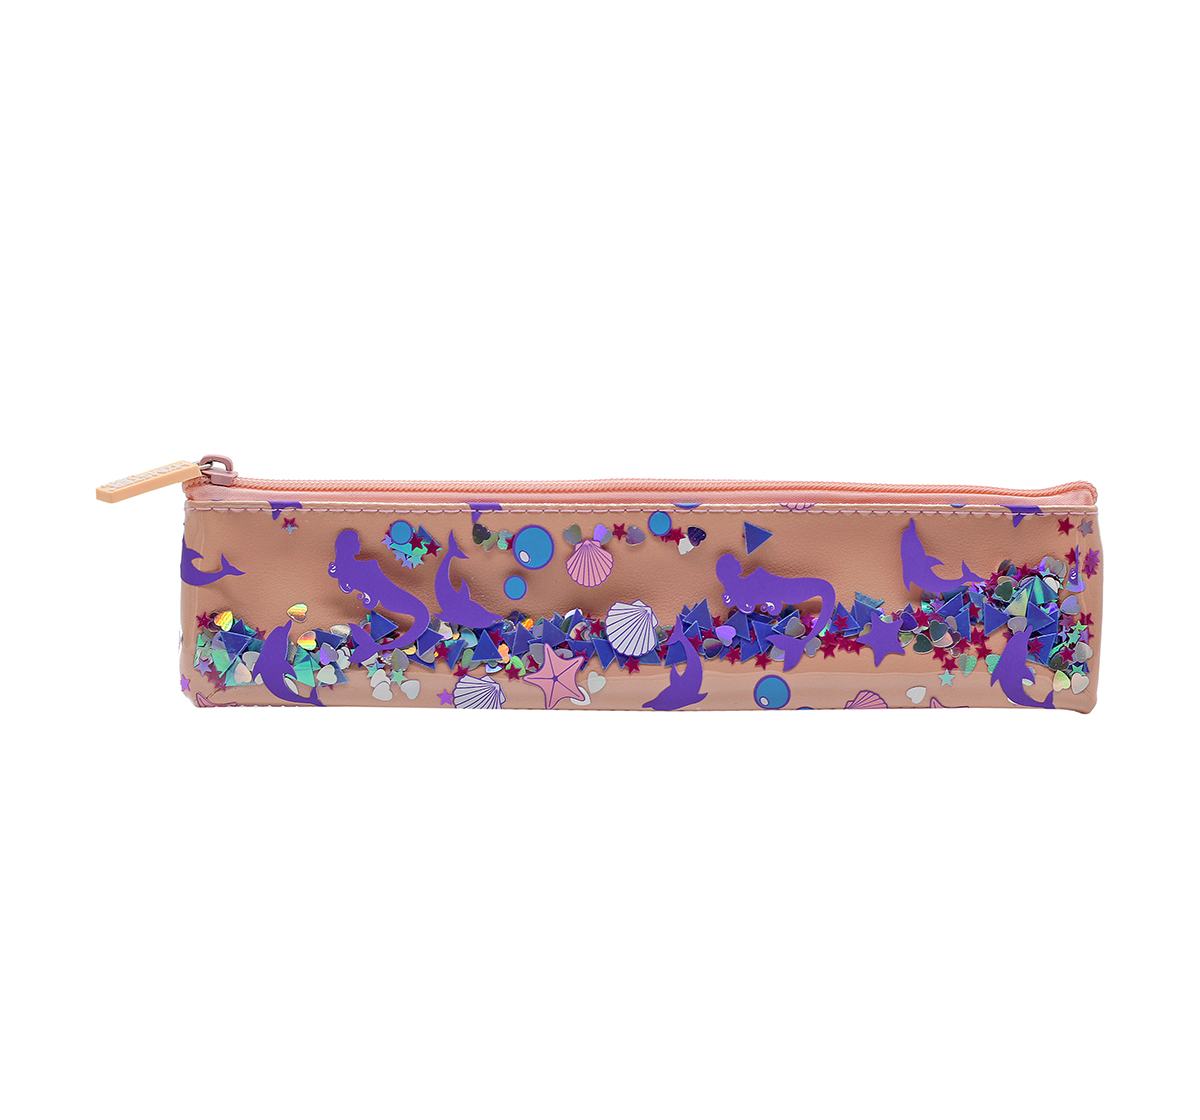 Hamster London   Hamster London Mermaid Pencil Pouch with Book Band for Kids age 3Y+ (Peach)